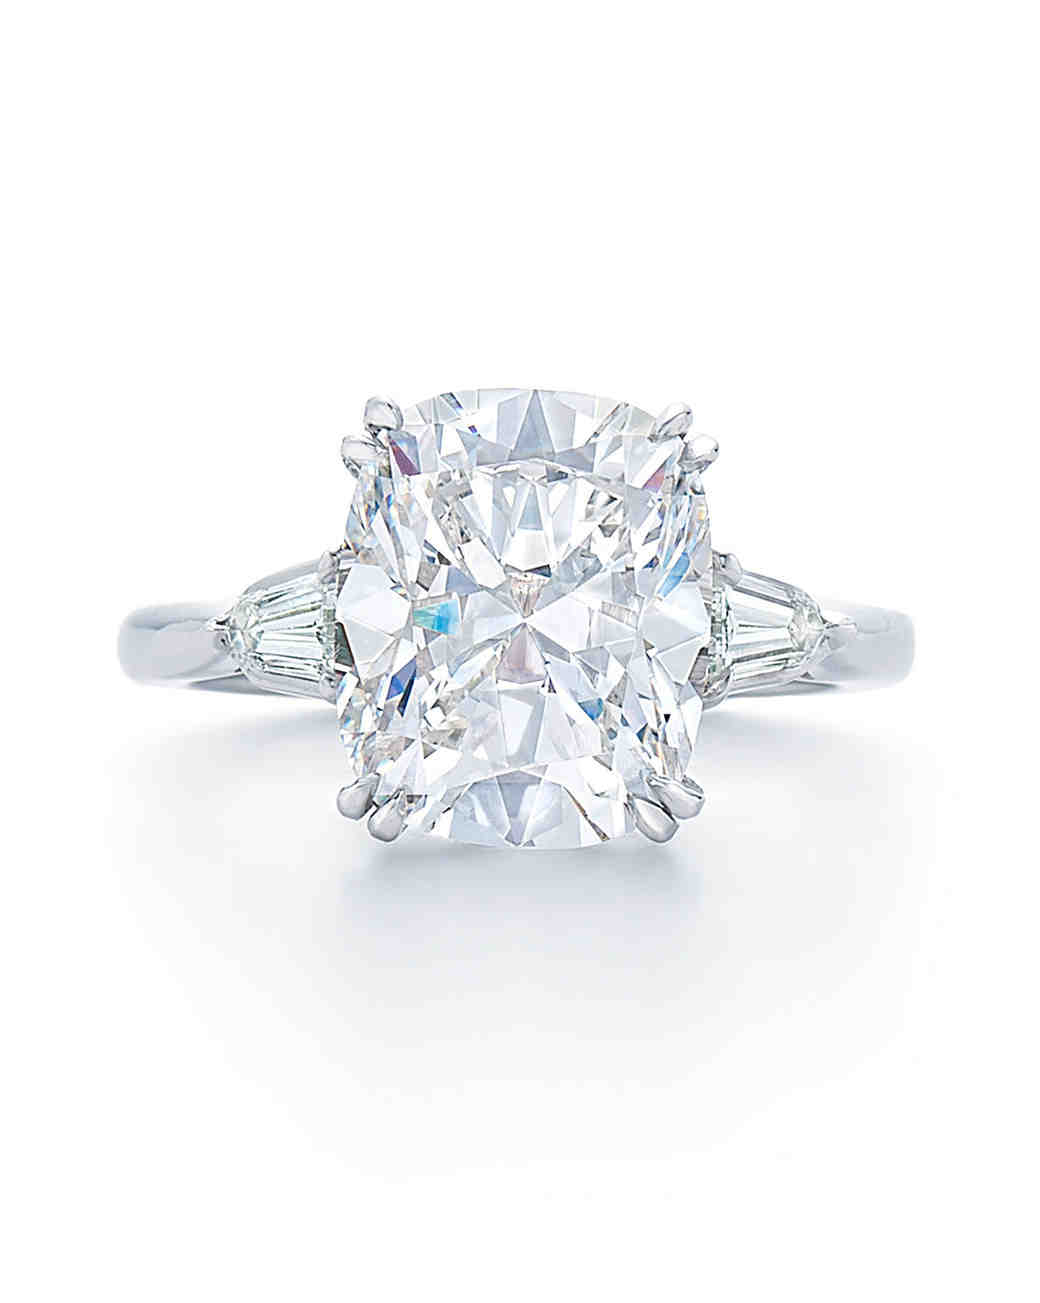 stone love barra cut available jewelers jewellery options diamonds queen metals gold and fb rosados size white moissanite other cushion halo ring promise box rings engagement